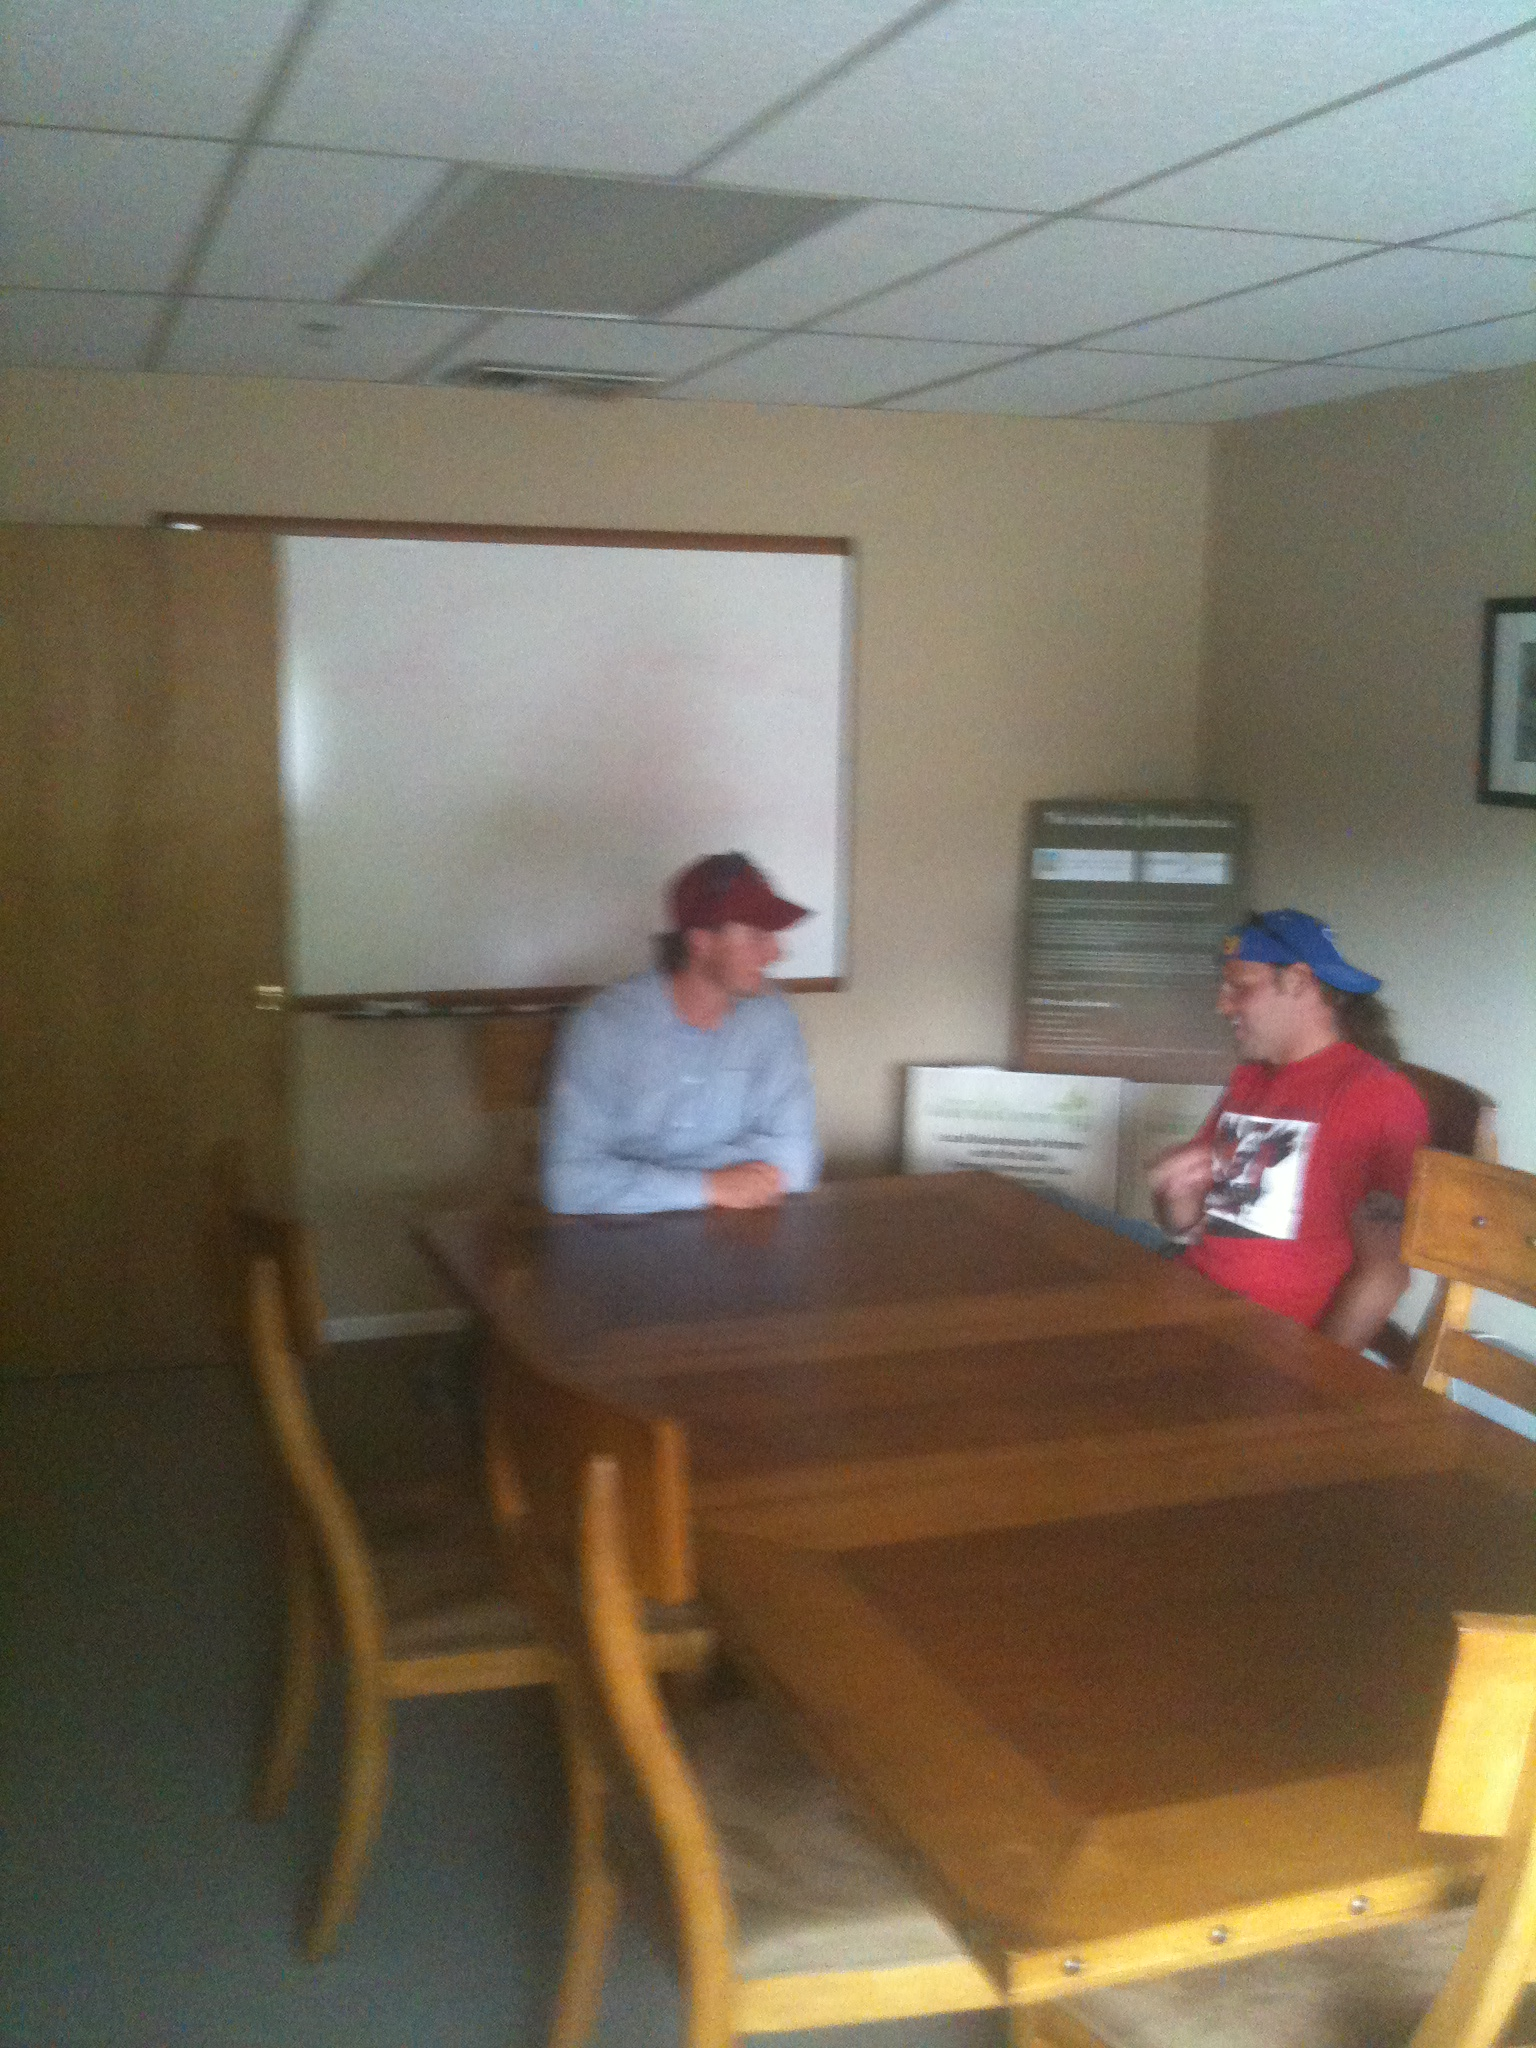 Paul (left) and Matt in the conference room